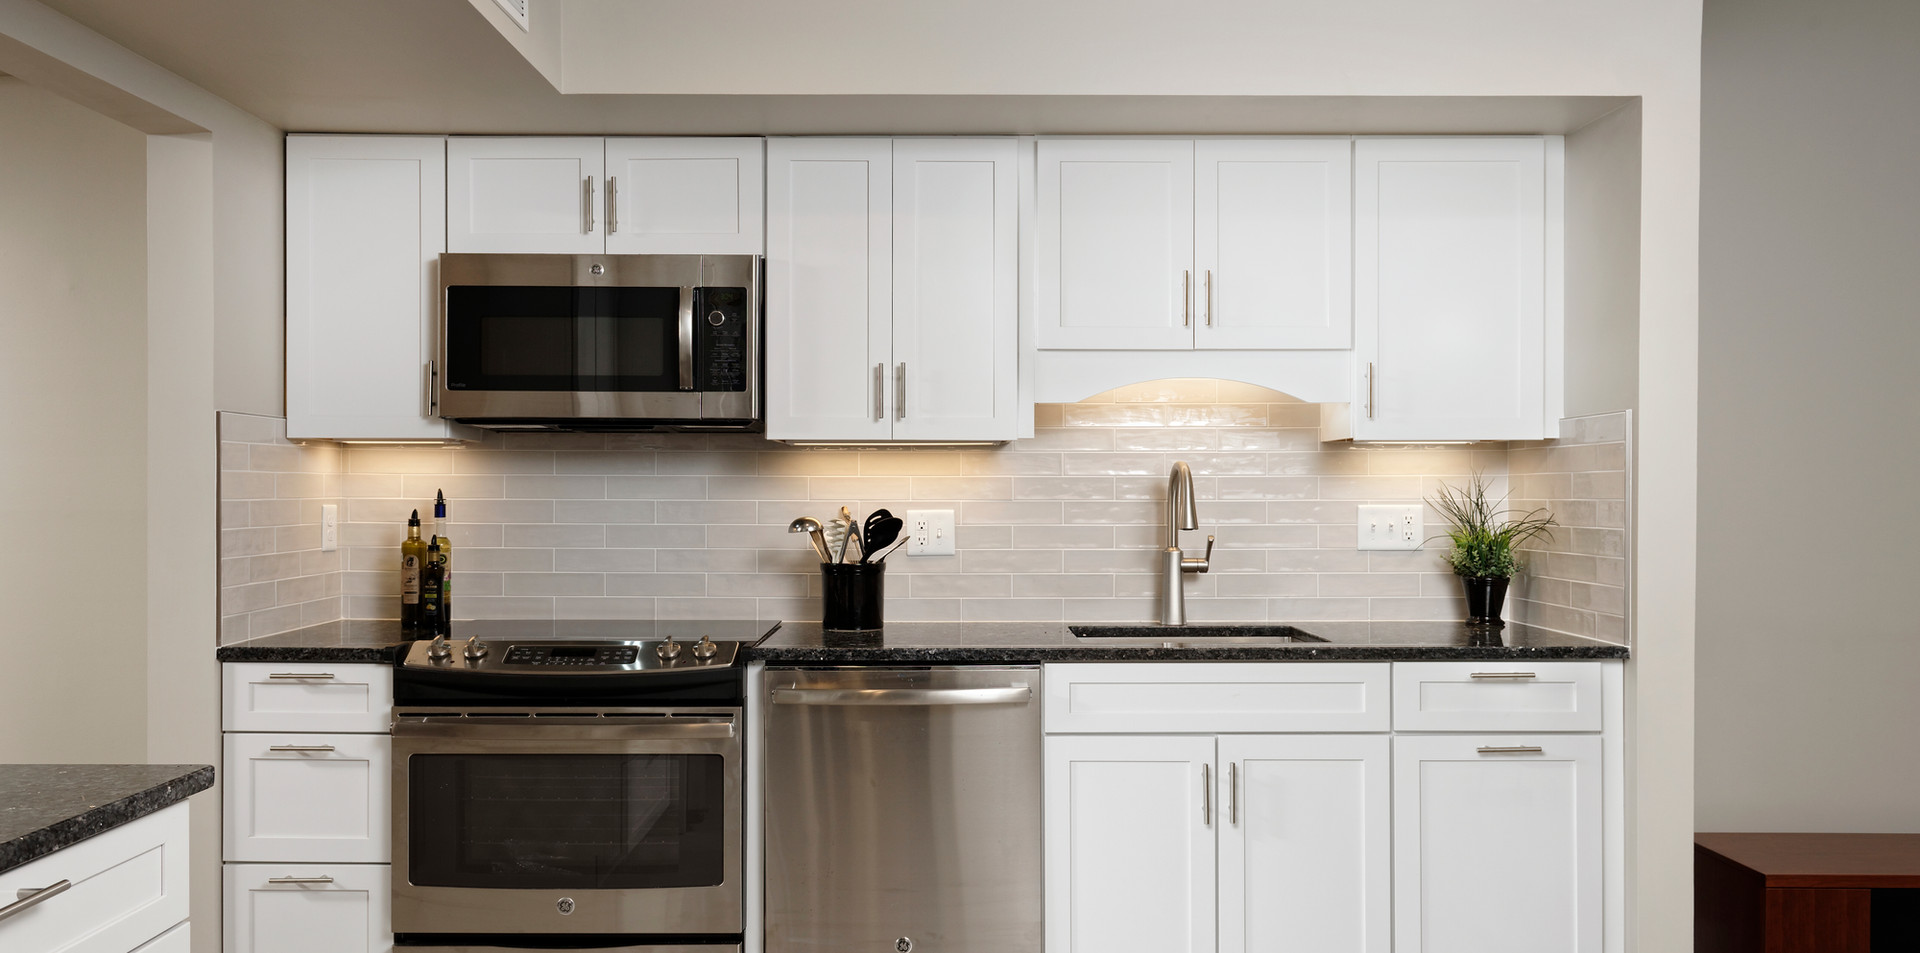 Clean White and Stainless Steel Kitchen